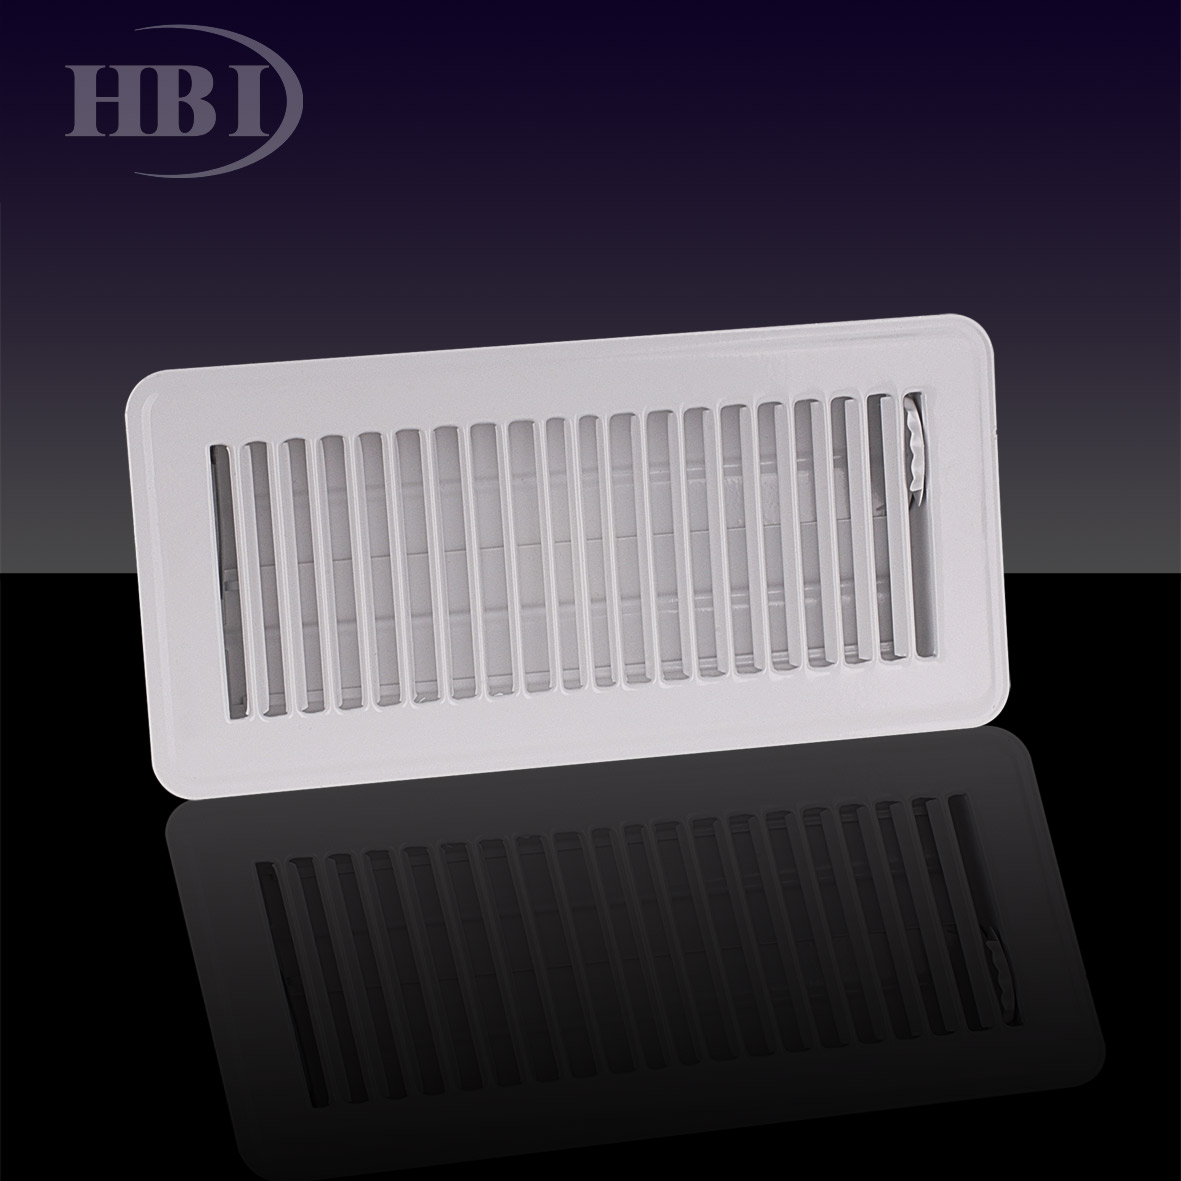 Decorative Return Air Vent Cover Decorative Air Conditioner Return Covers Home And Furnitures